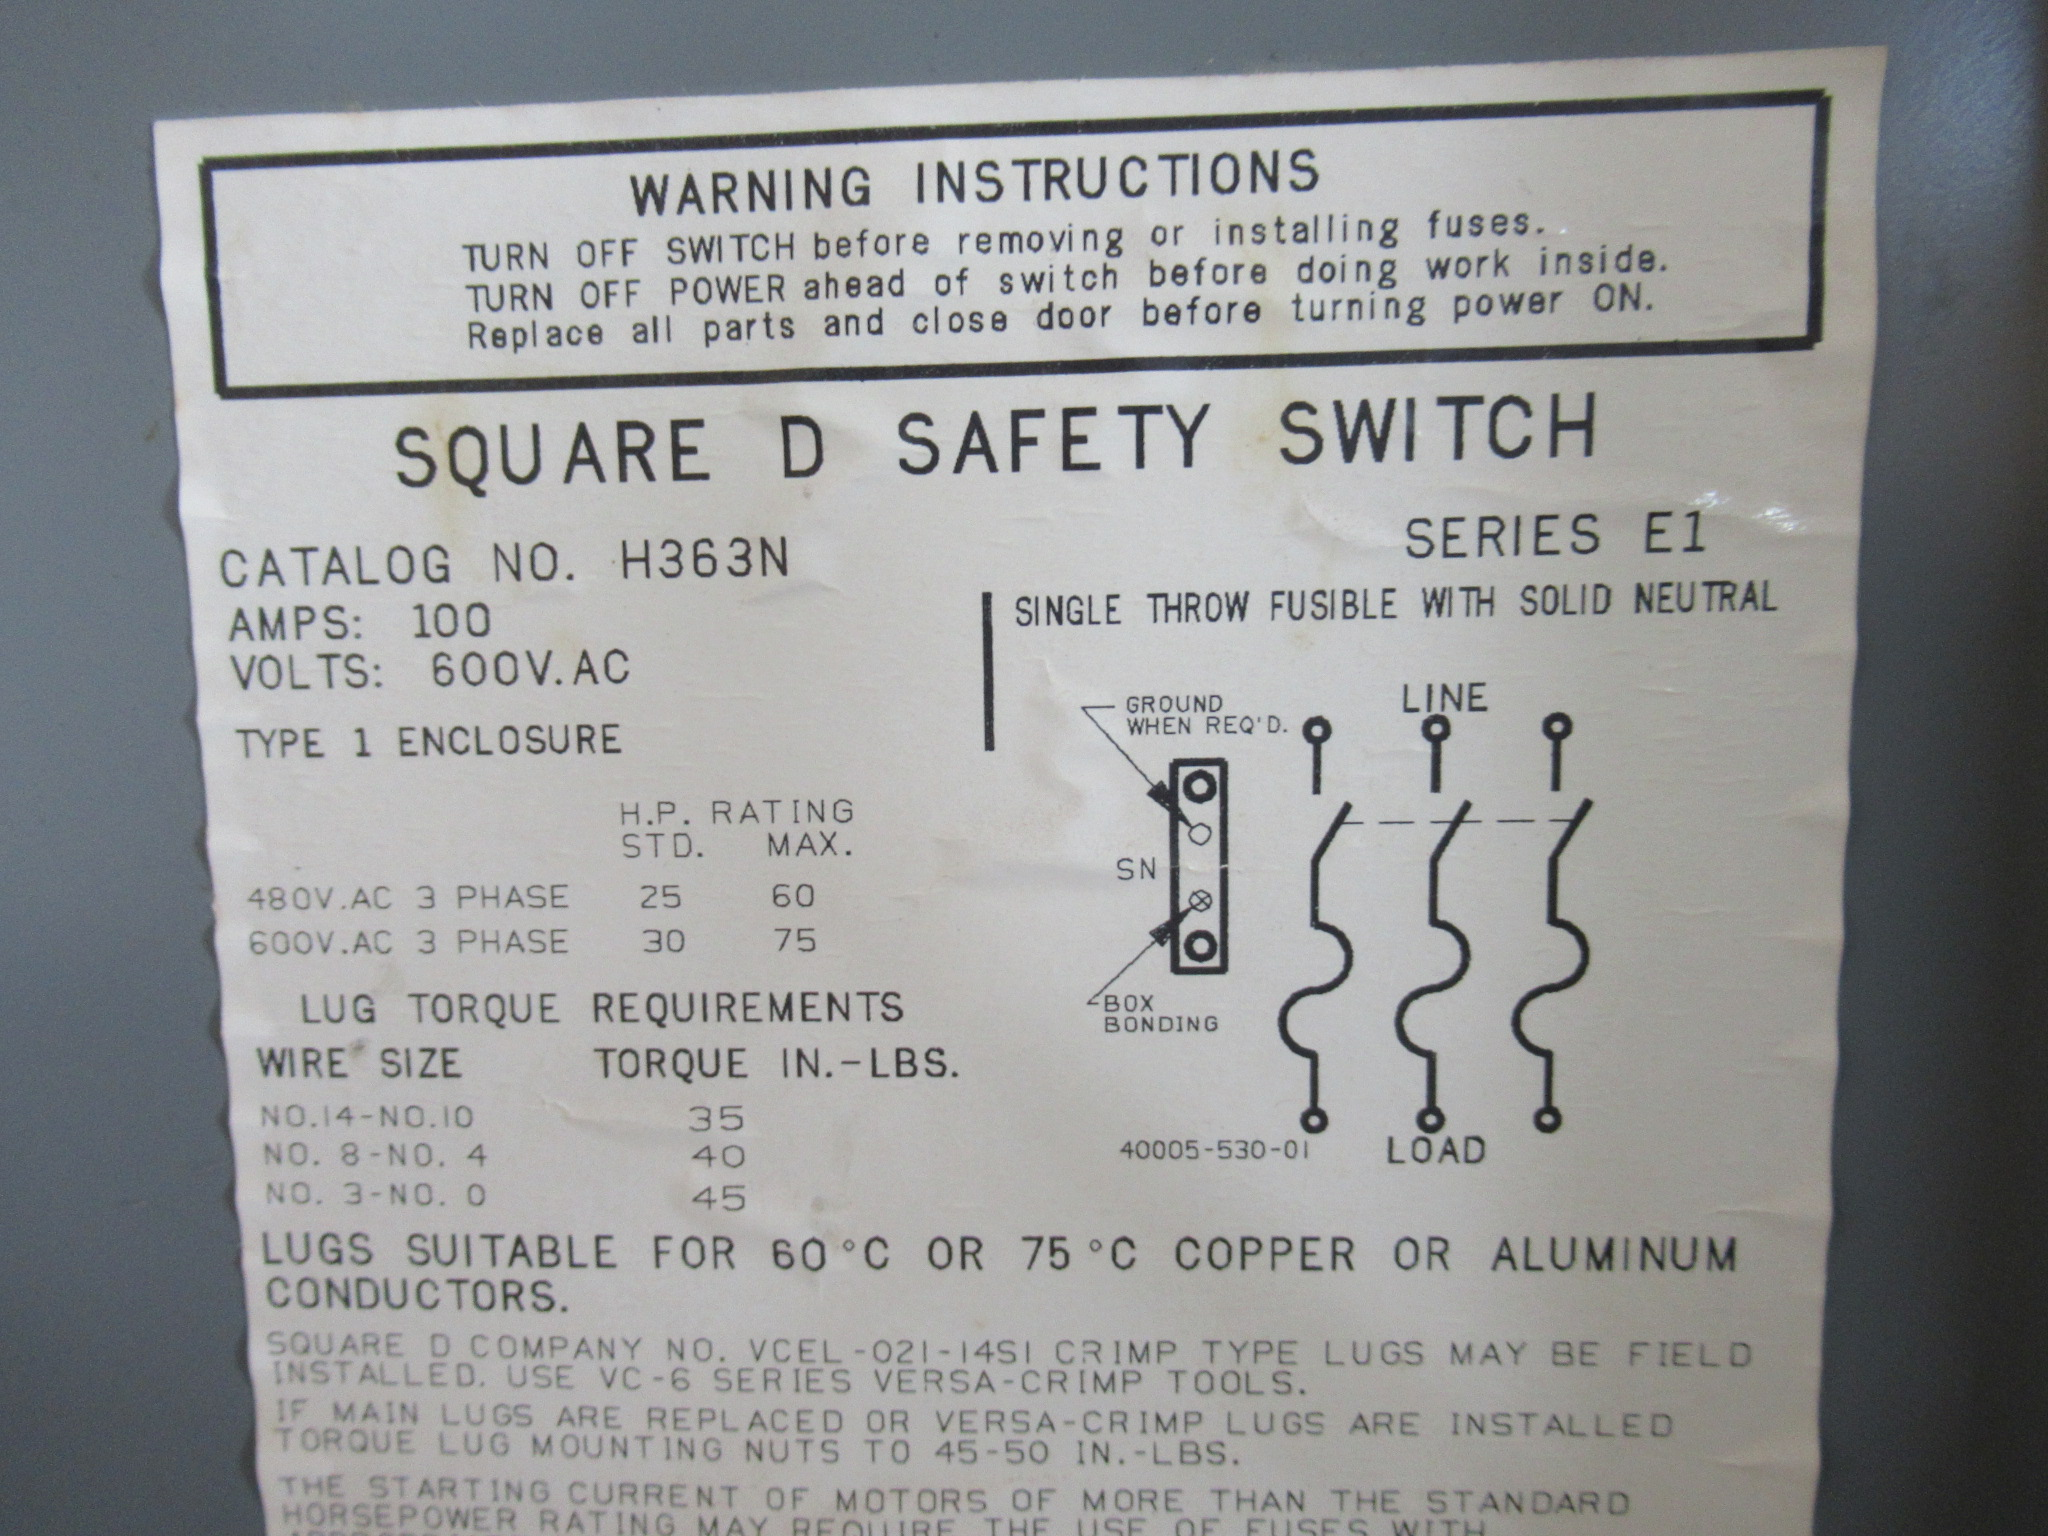 100 AMP 3 PHASE 600 VAC SQUARE D FUSIBLE SAFETY SWITCH DISCONNECT CAT#  H363N SERIES E1